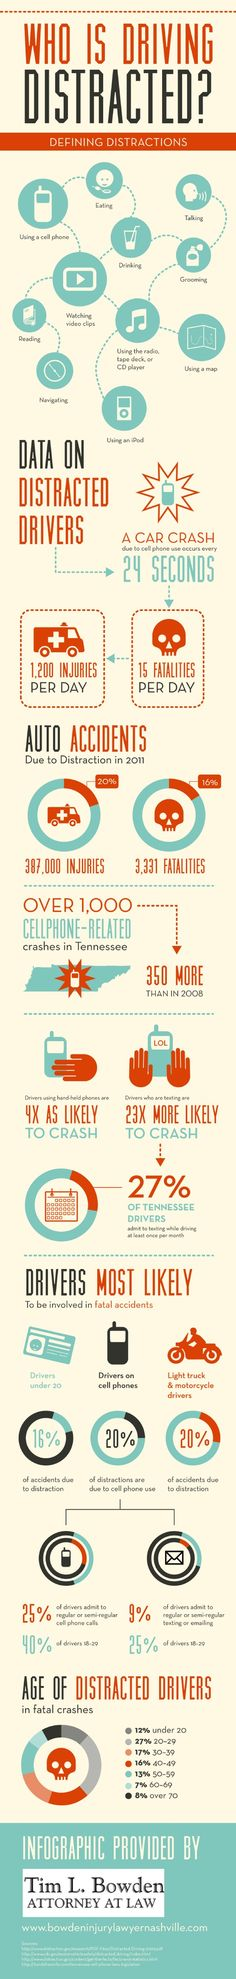 #Infographic on distracted driving